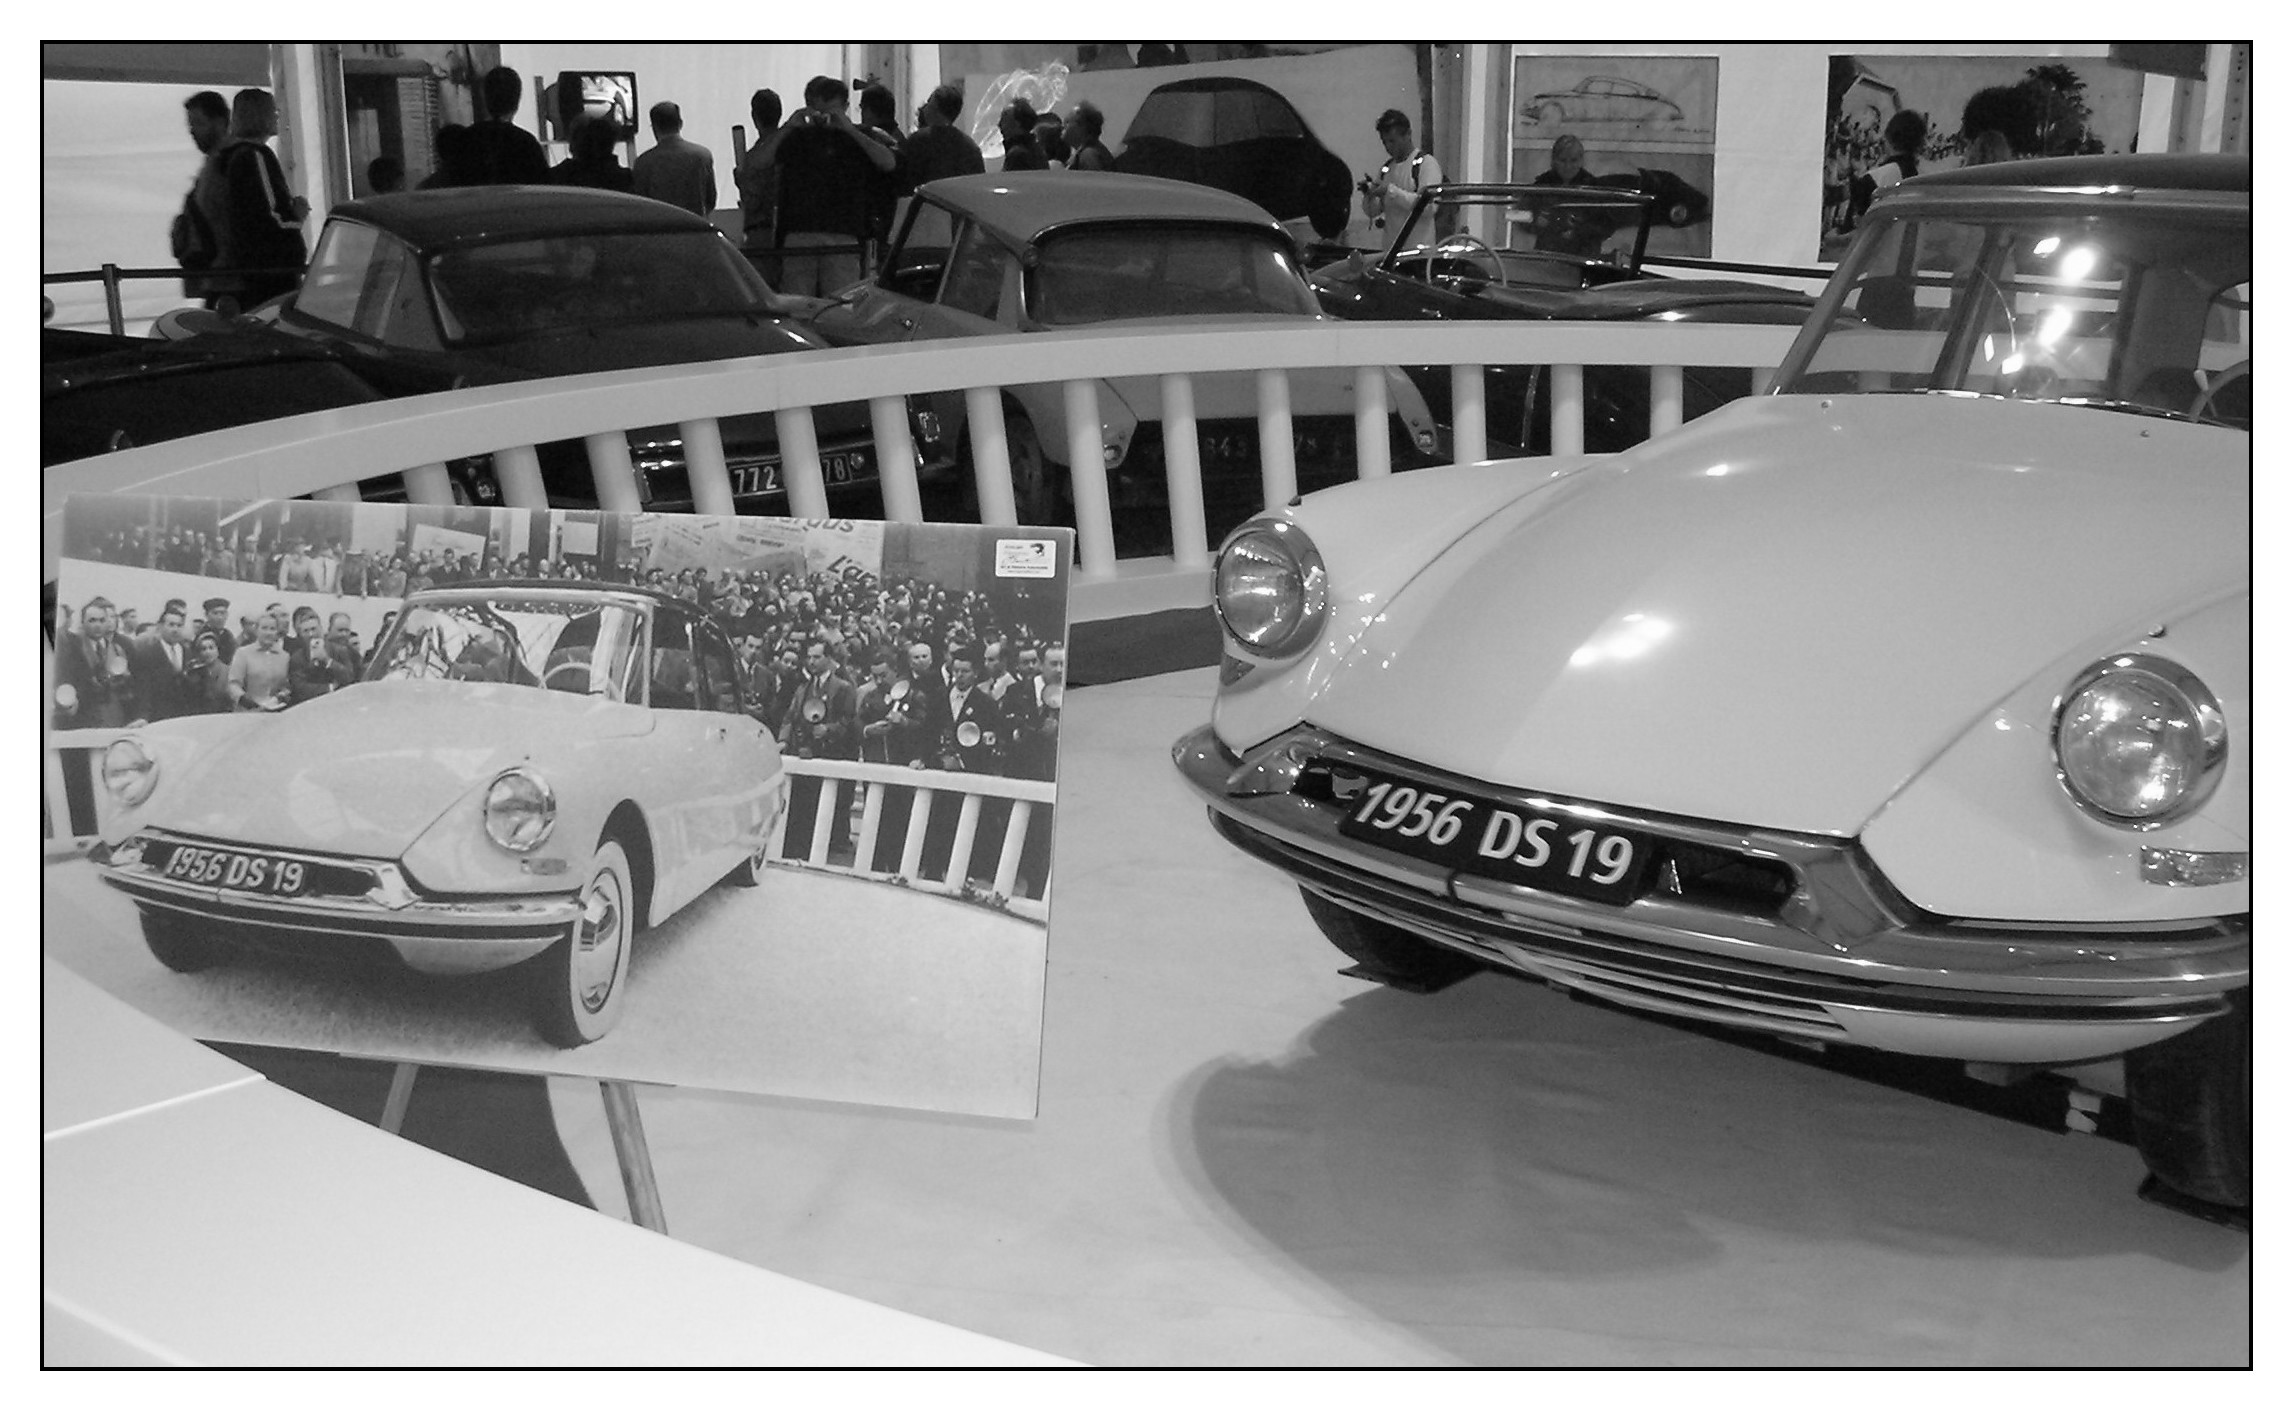 Citroën DS 19 - Salon de Paris 1956 | Flickr - Photo Sharing!